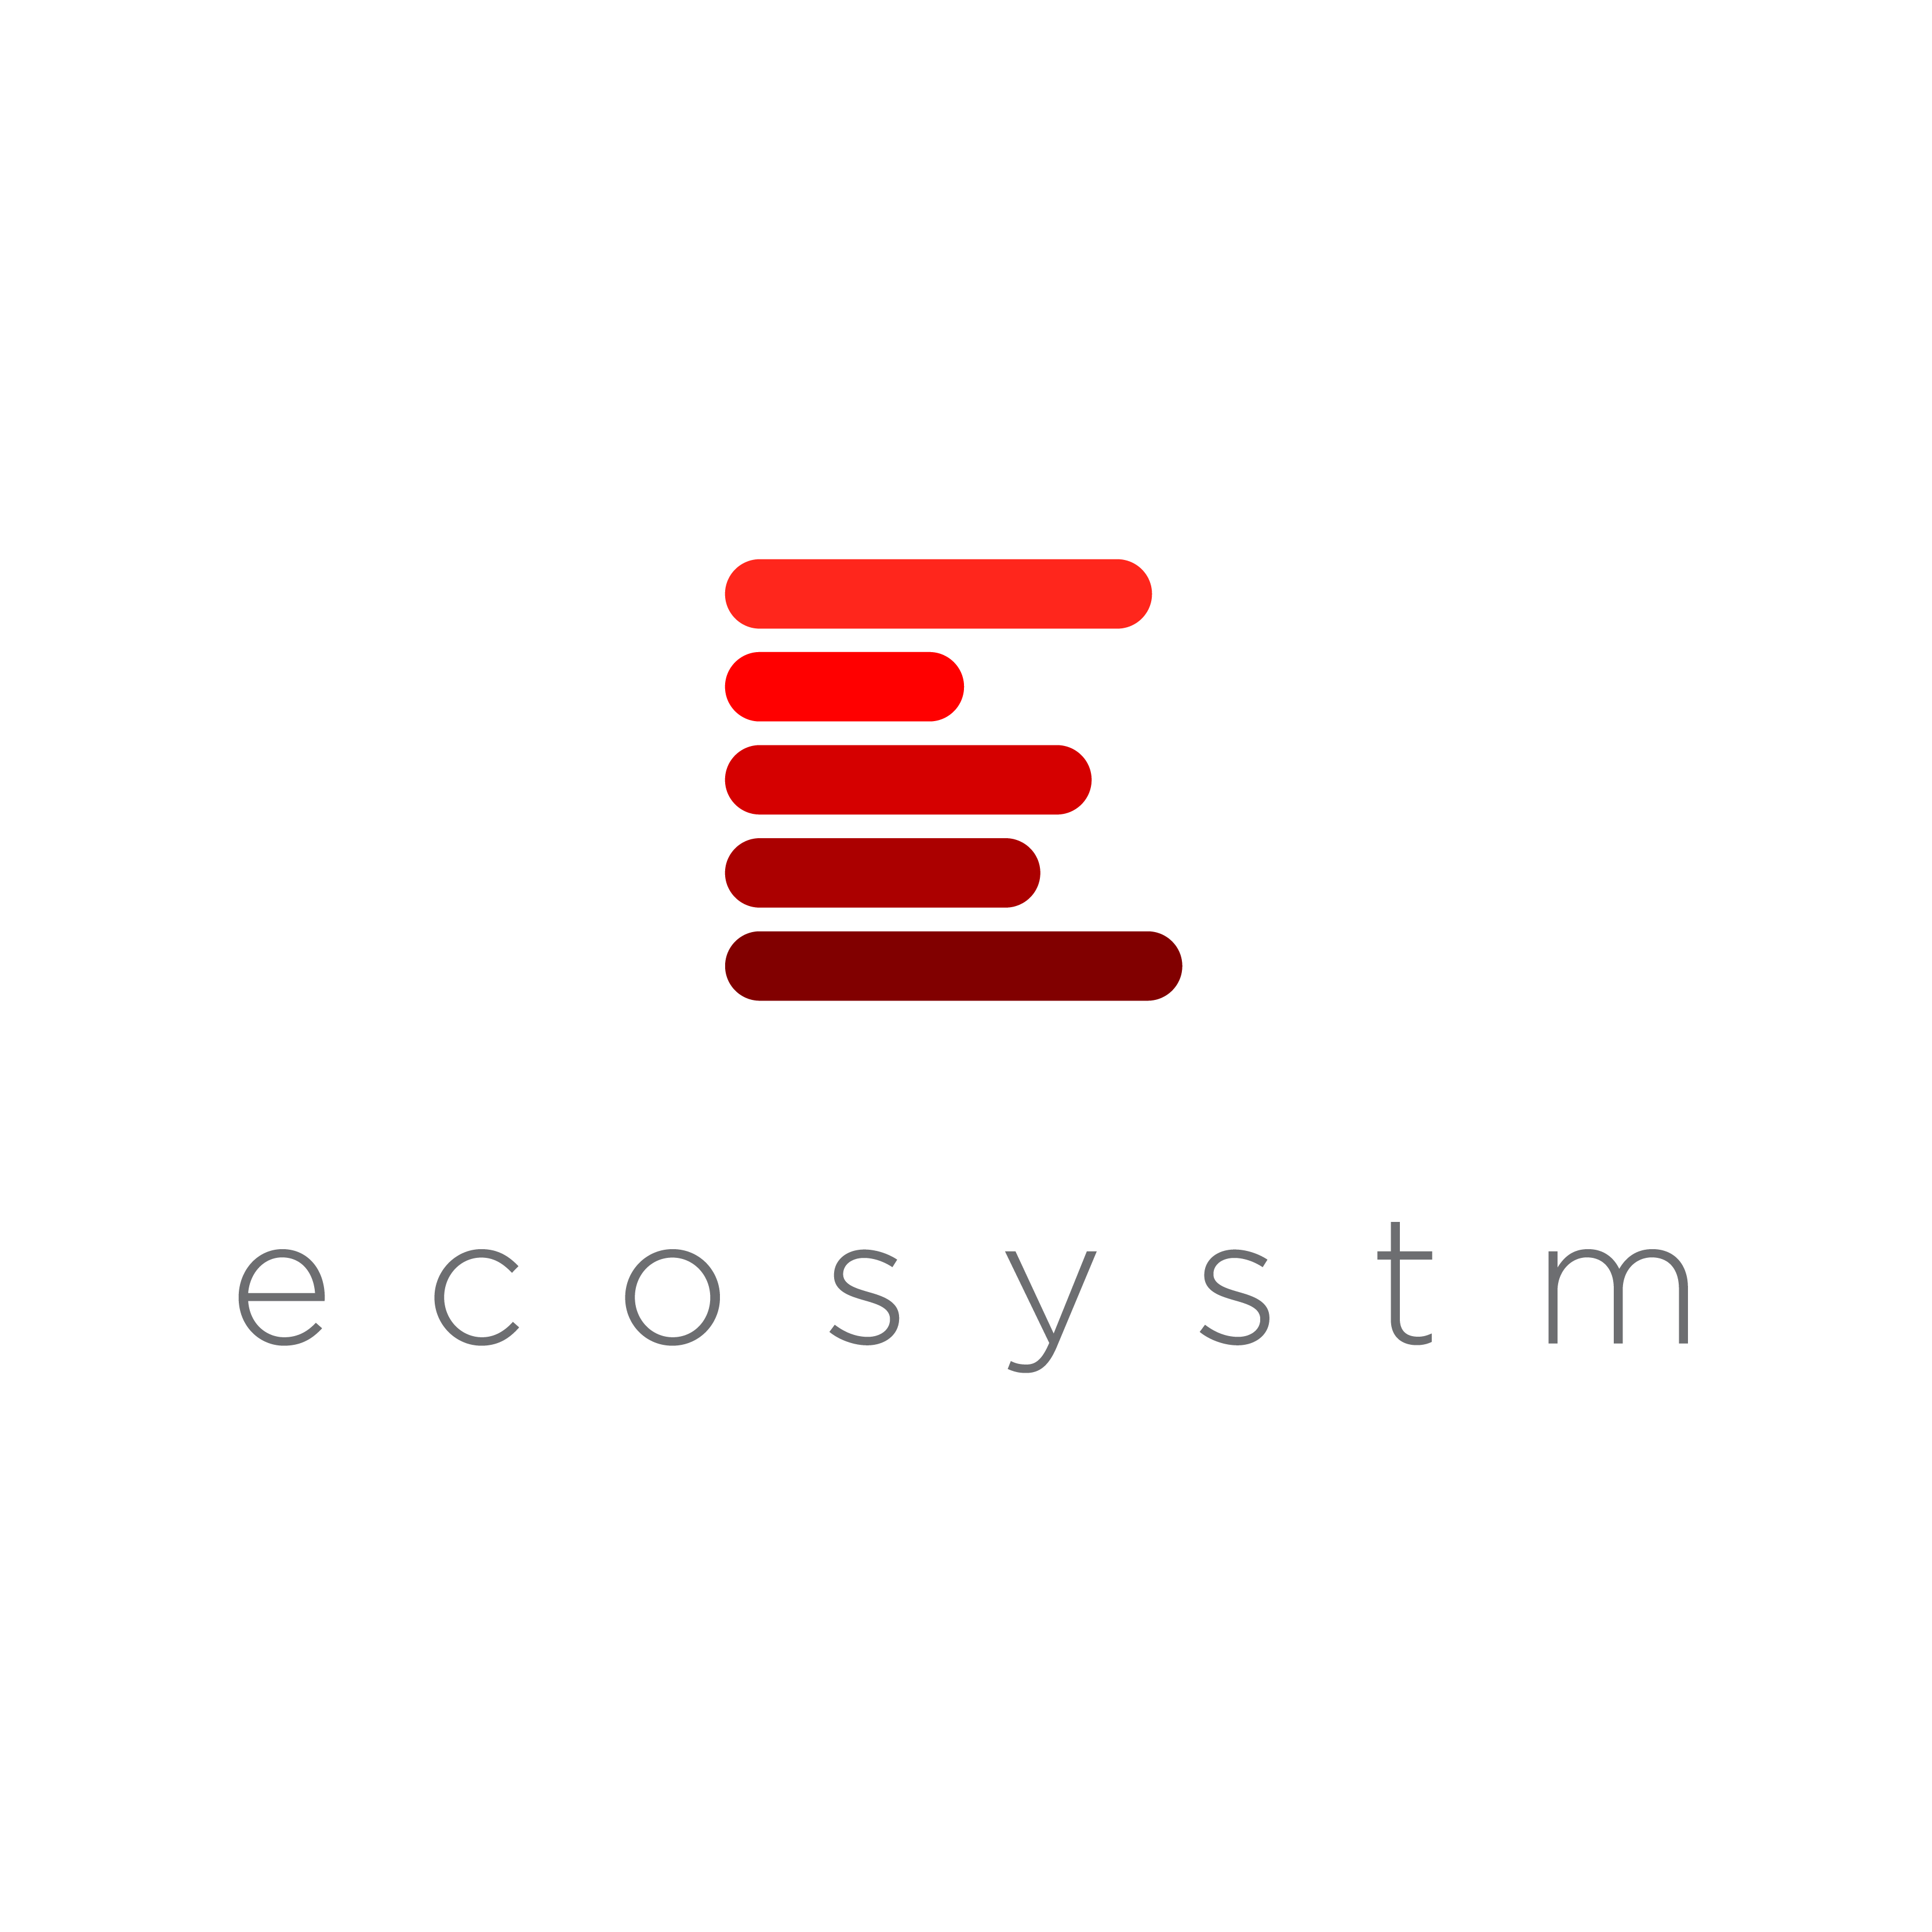 Ecosystm Appoints Capgemini To Accelerate Growth Plans and Digital Experience